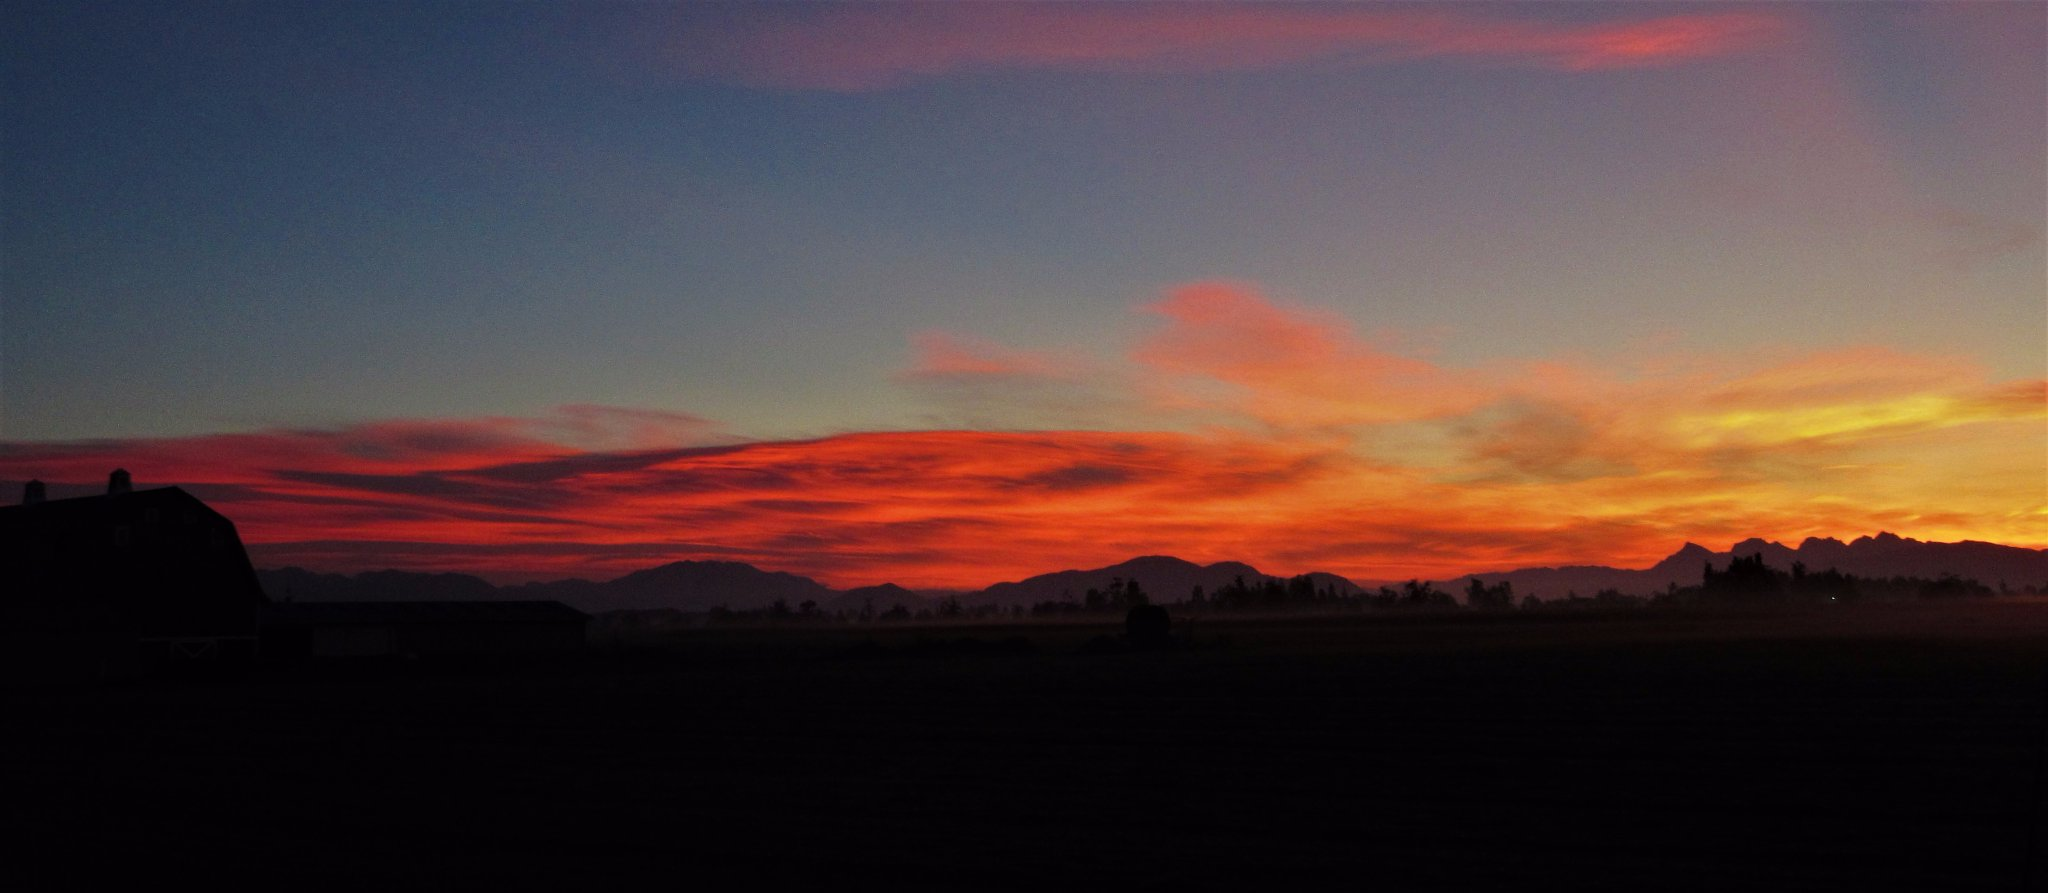 Sunset in Lynden, Wash. (Photo: Randy Small)